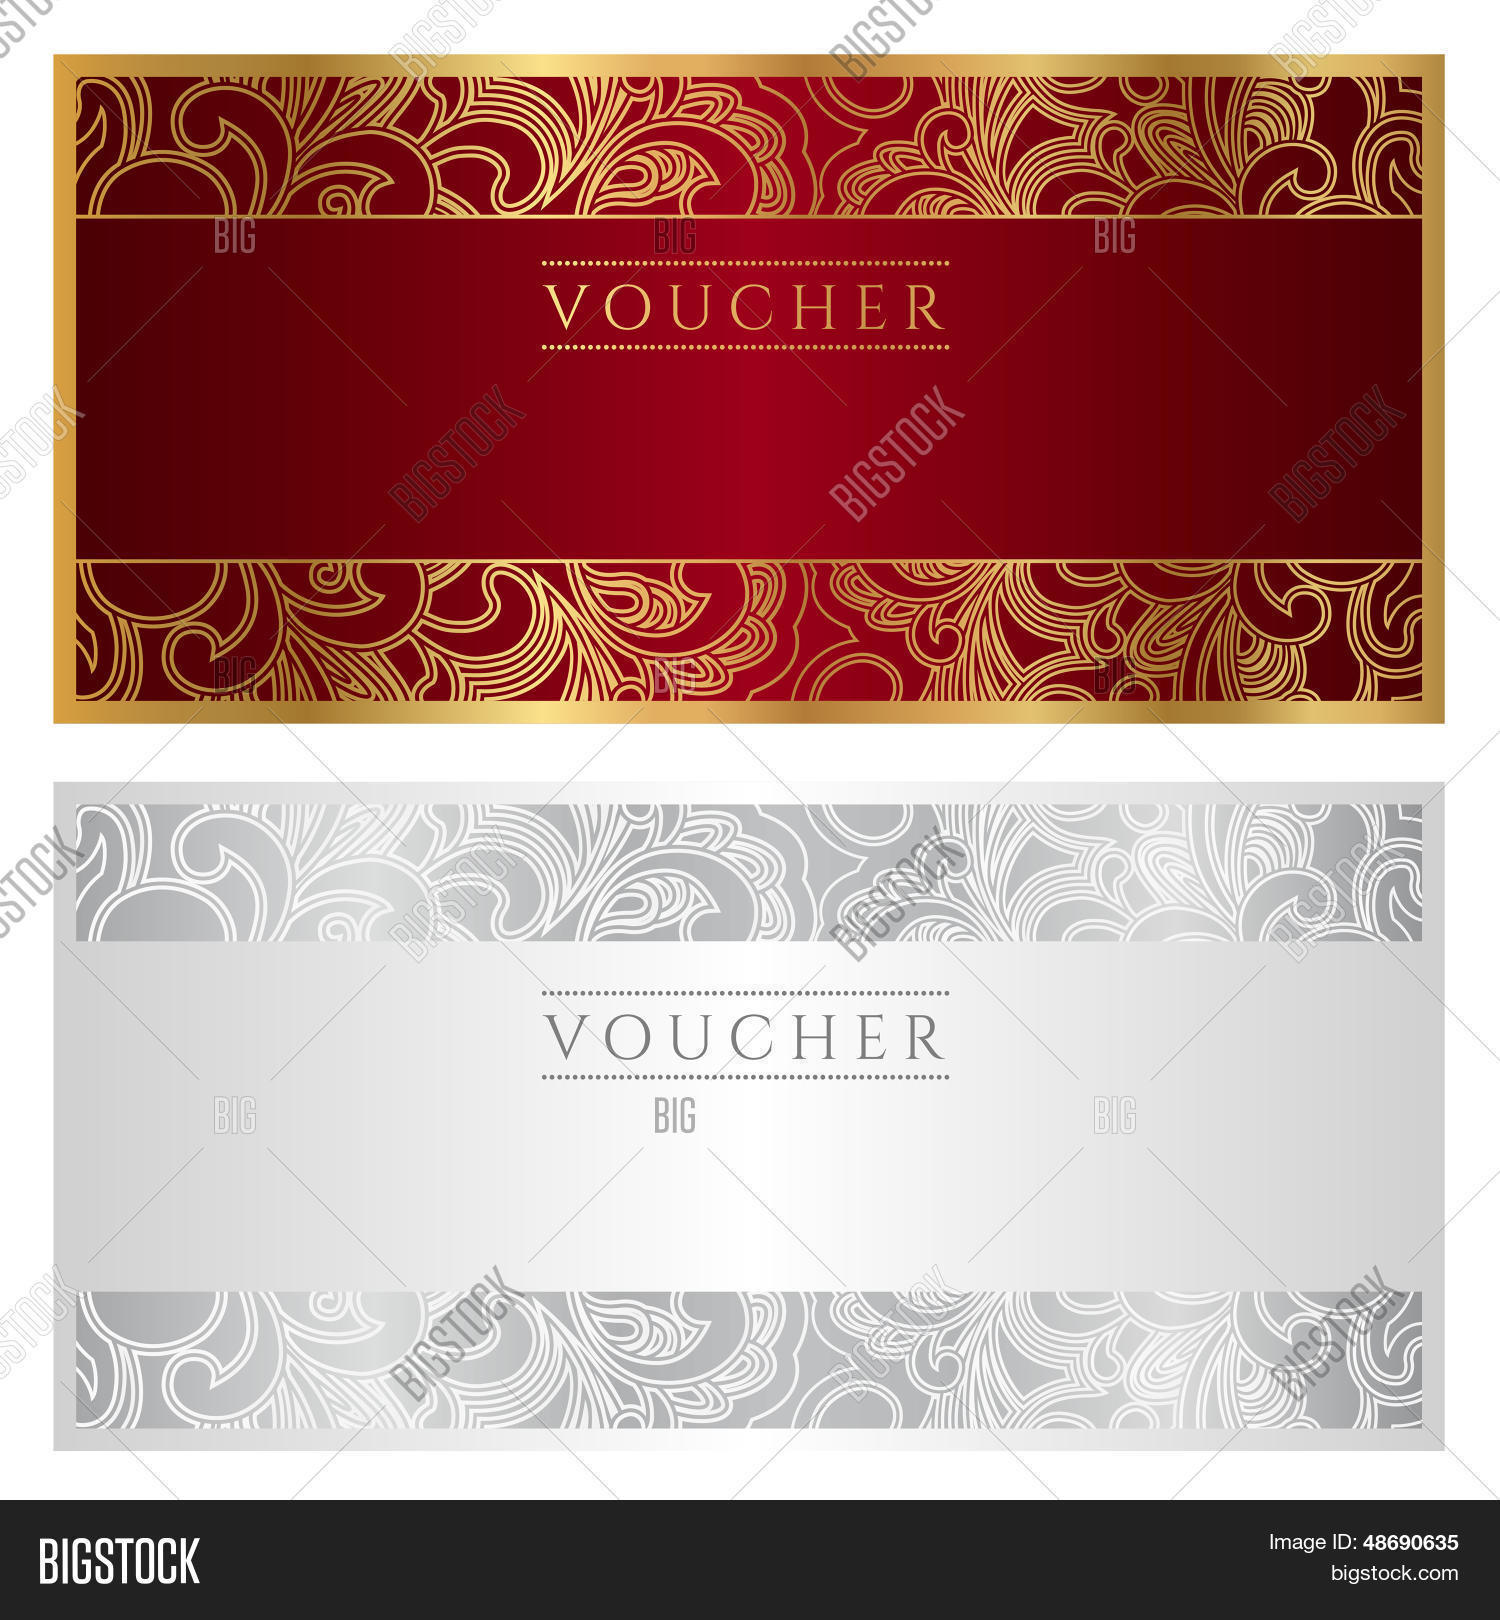 gift voucher certificate coupon template banknote money gift voucher certificate coupon template banknote money currency cheque